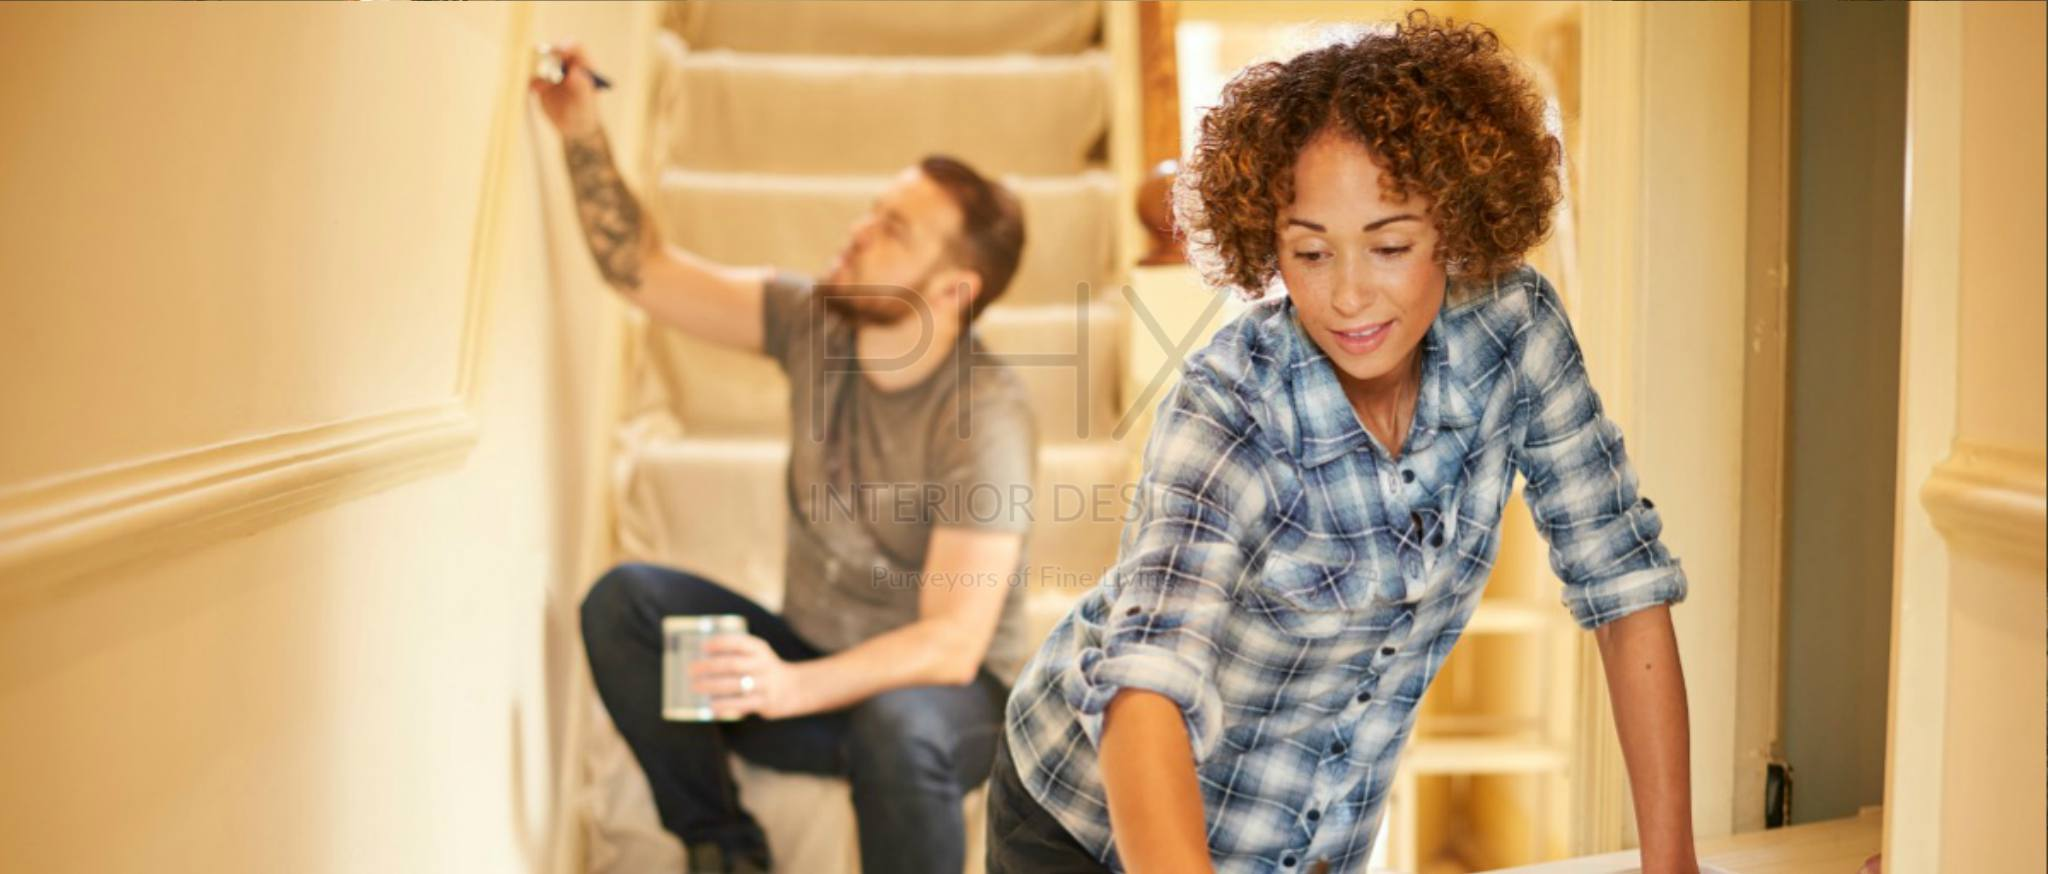 Be Your Own Home Remodeling Contractor Phx I D